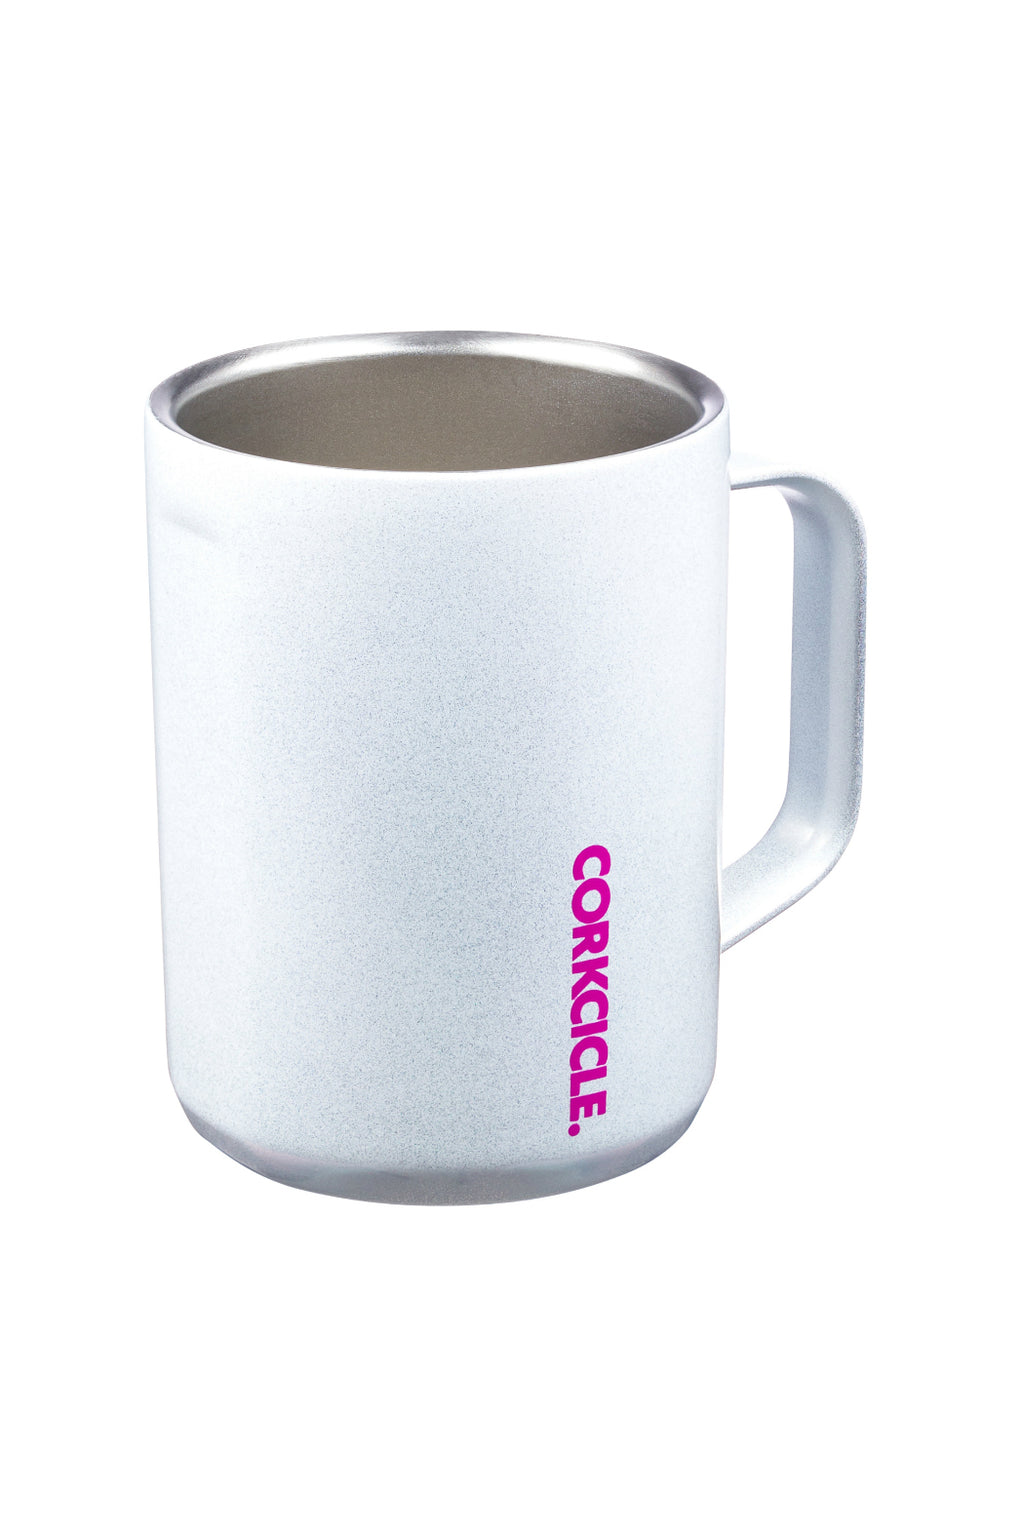 Corkcicle Mug in Unicorn Magic